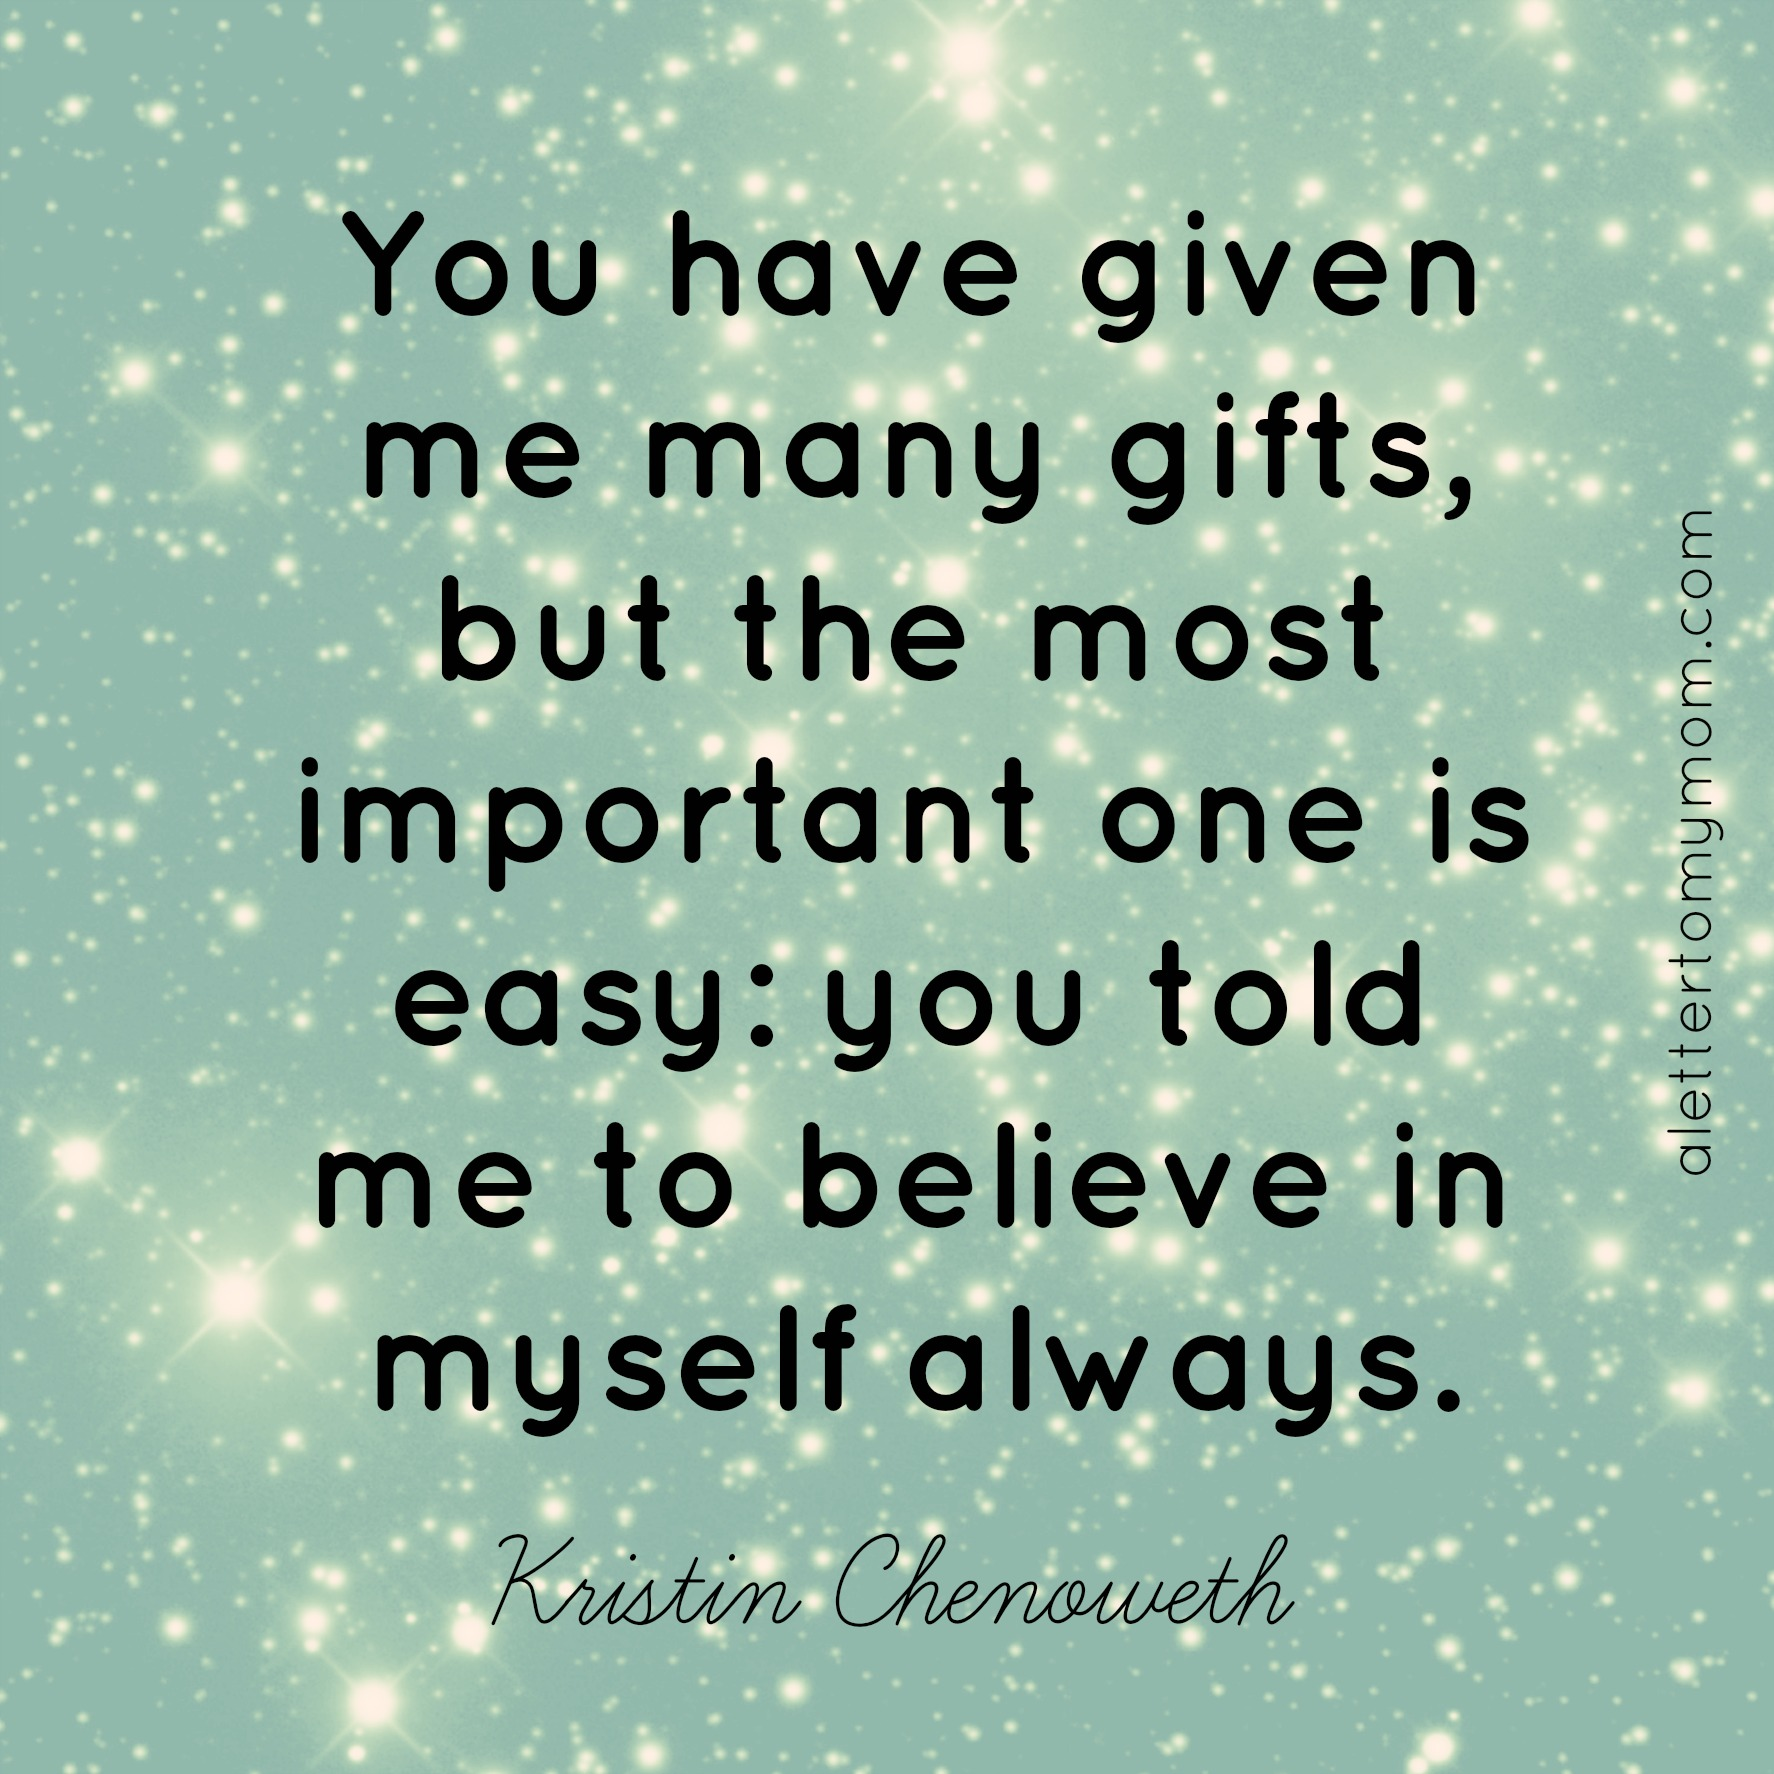 kristin chenoweth quote inspirational mothers day quote a letter to my mom